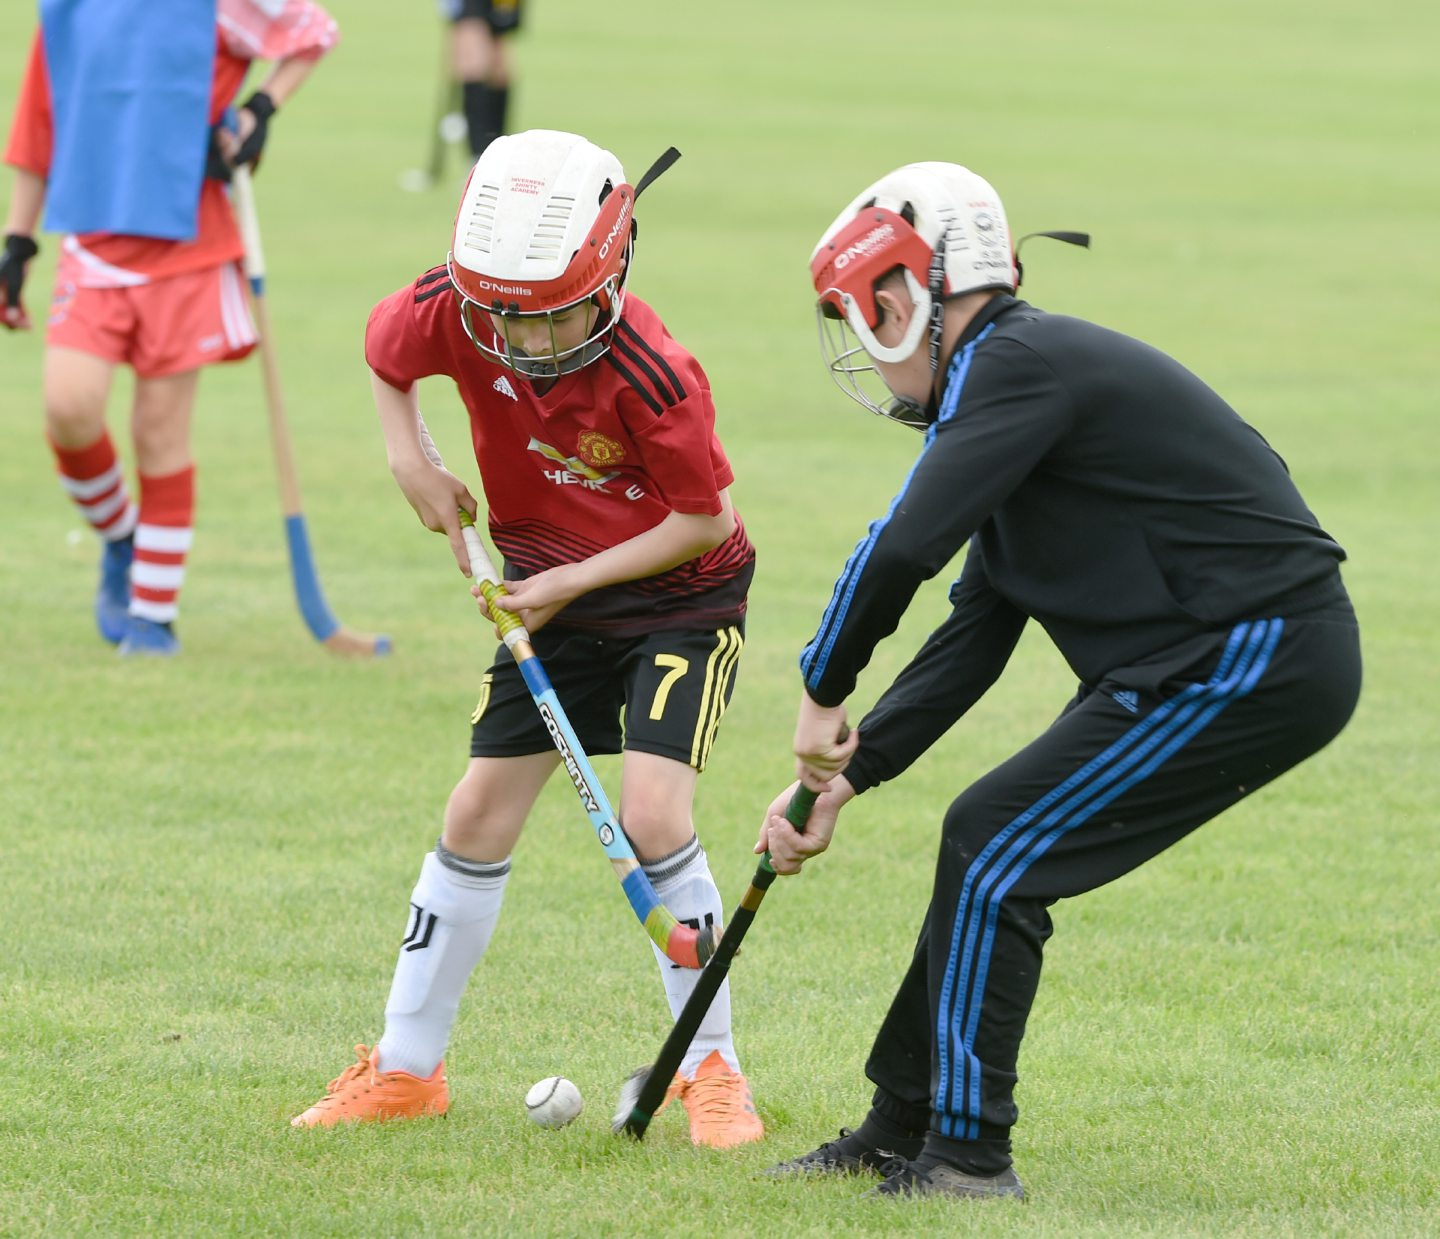 Youngsters battle over the ball during this Shinty exhibition. Picture by Sandy McCook